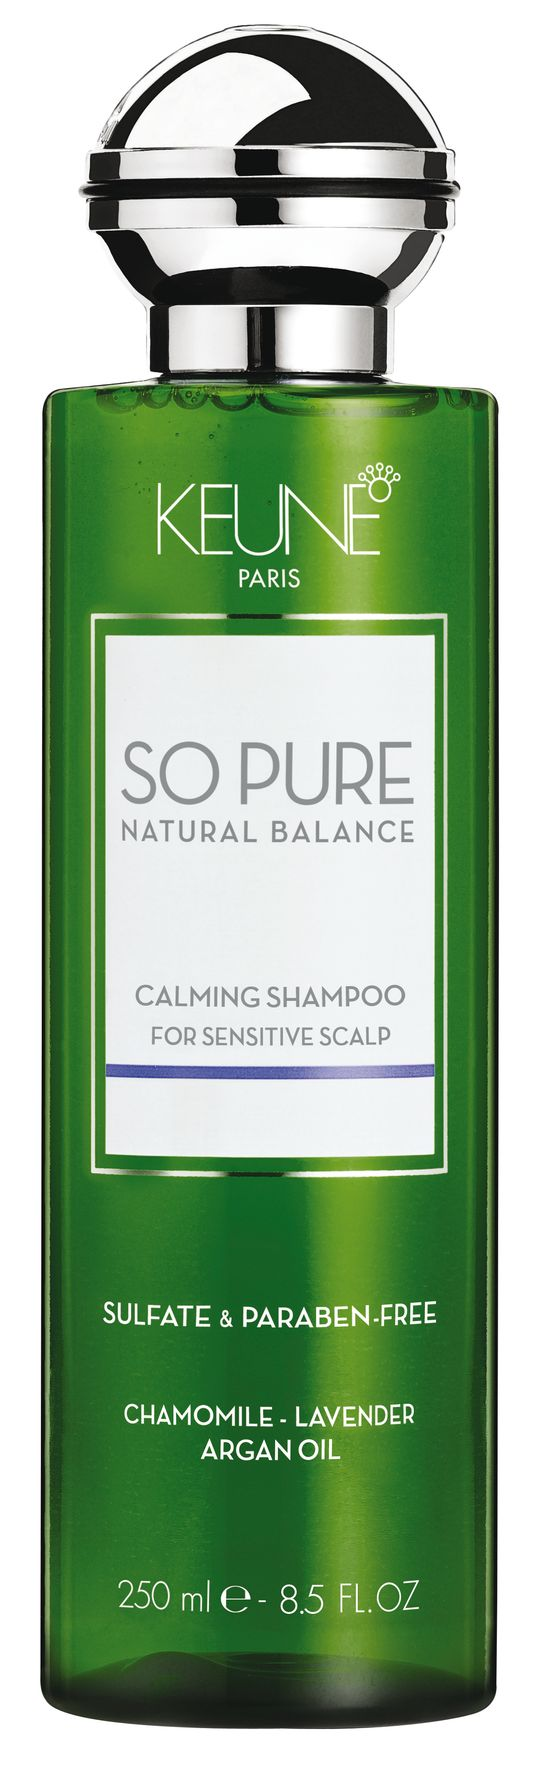 So Pure Calming Shampoo